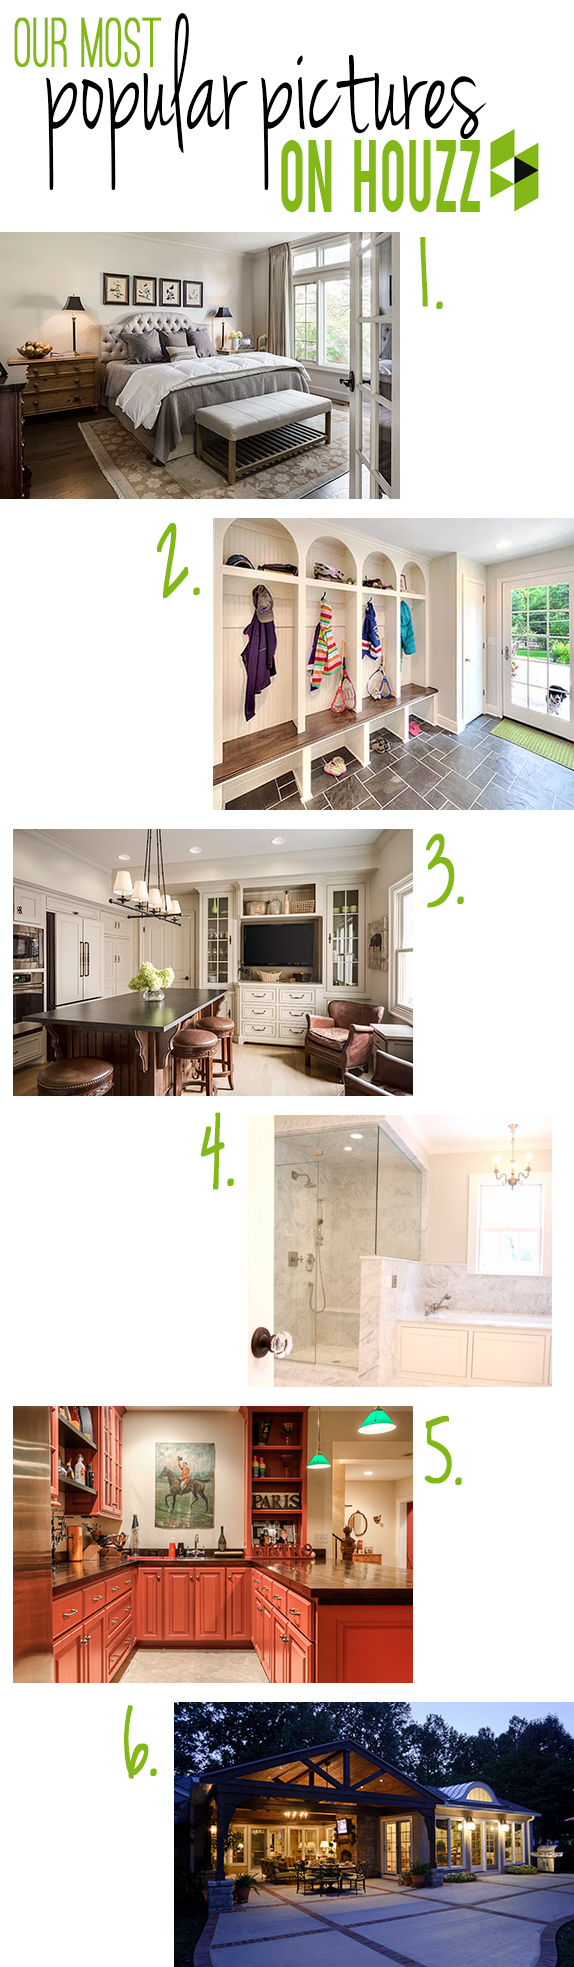 6 most popular scovell wolfe pictures on houzz